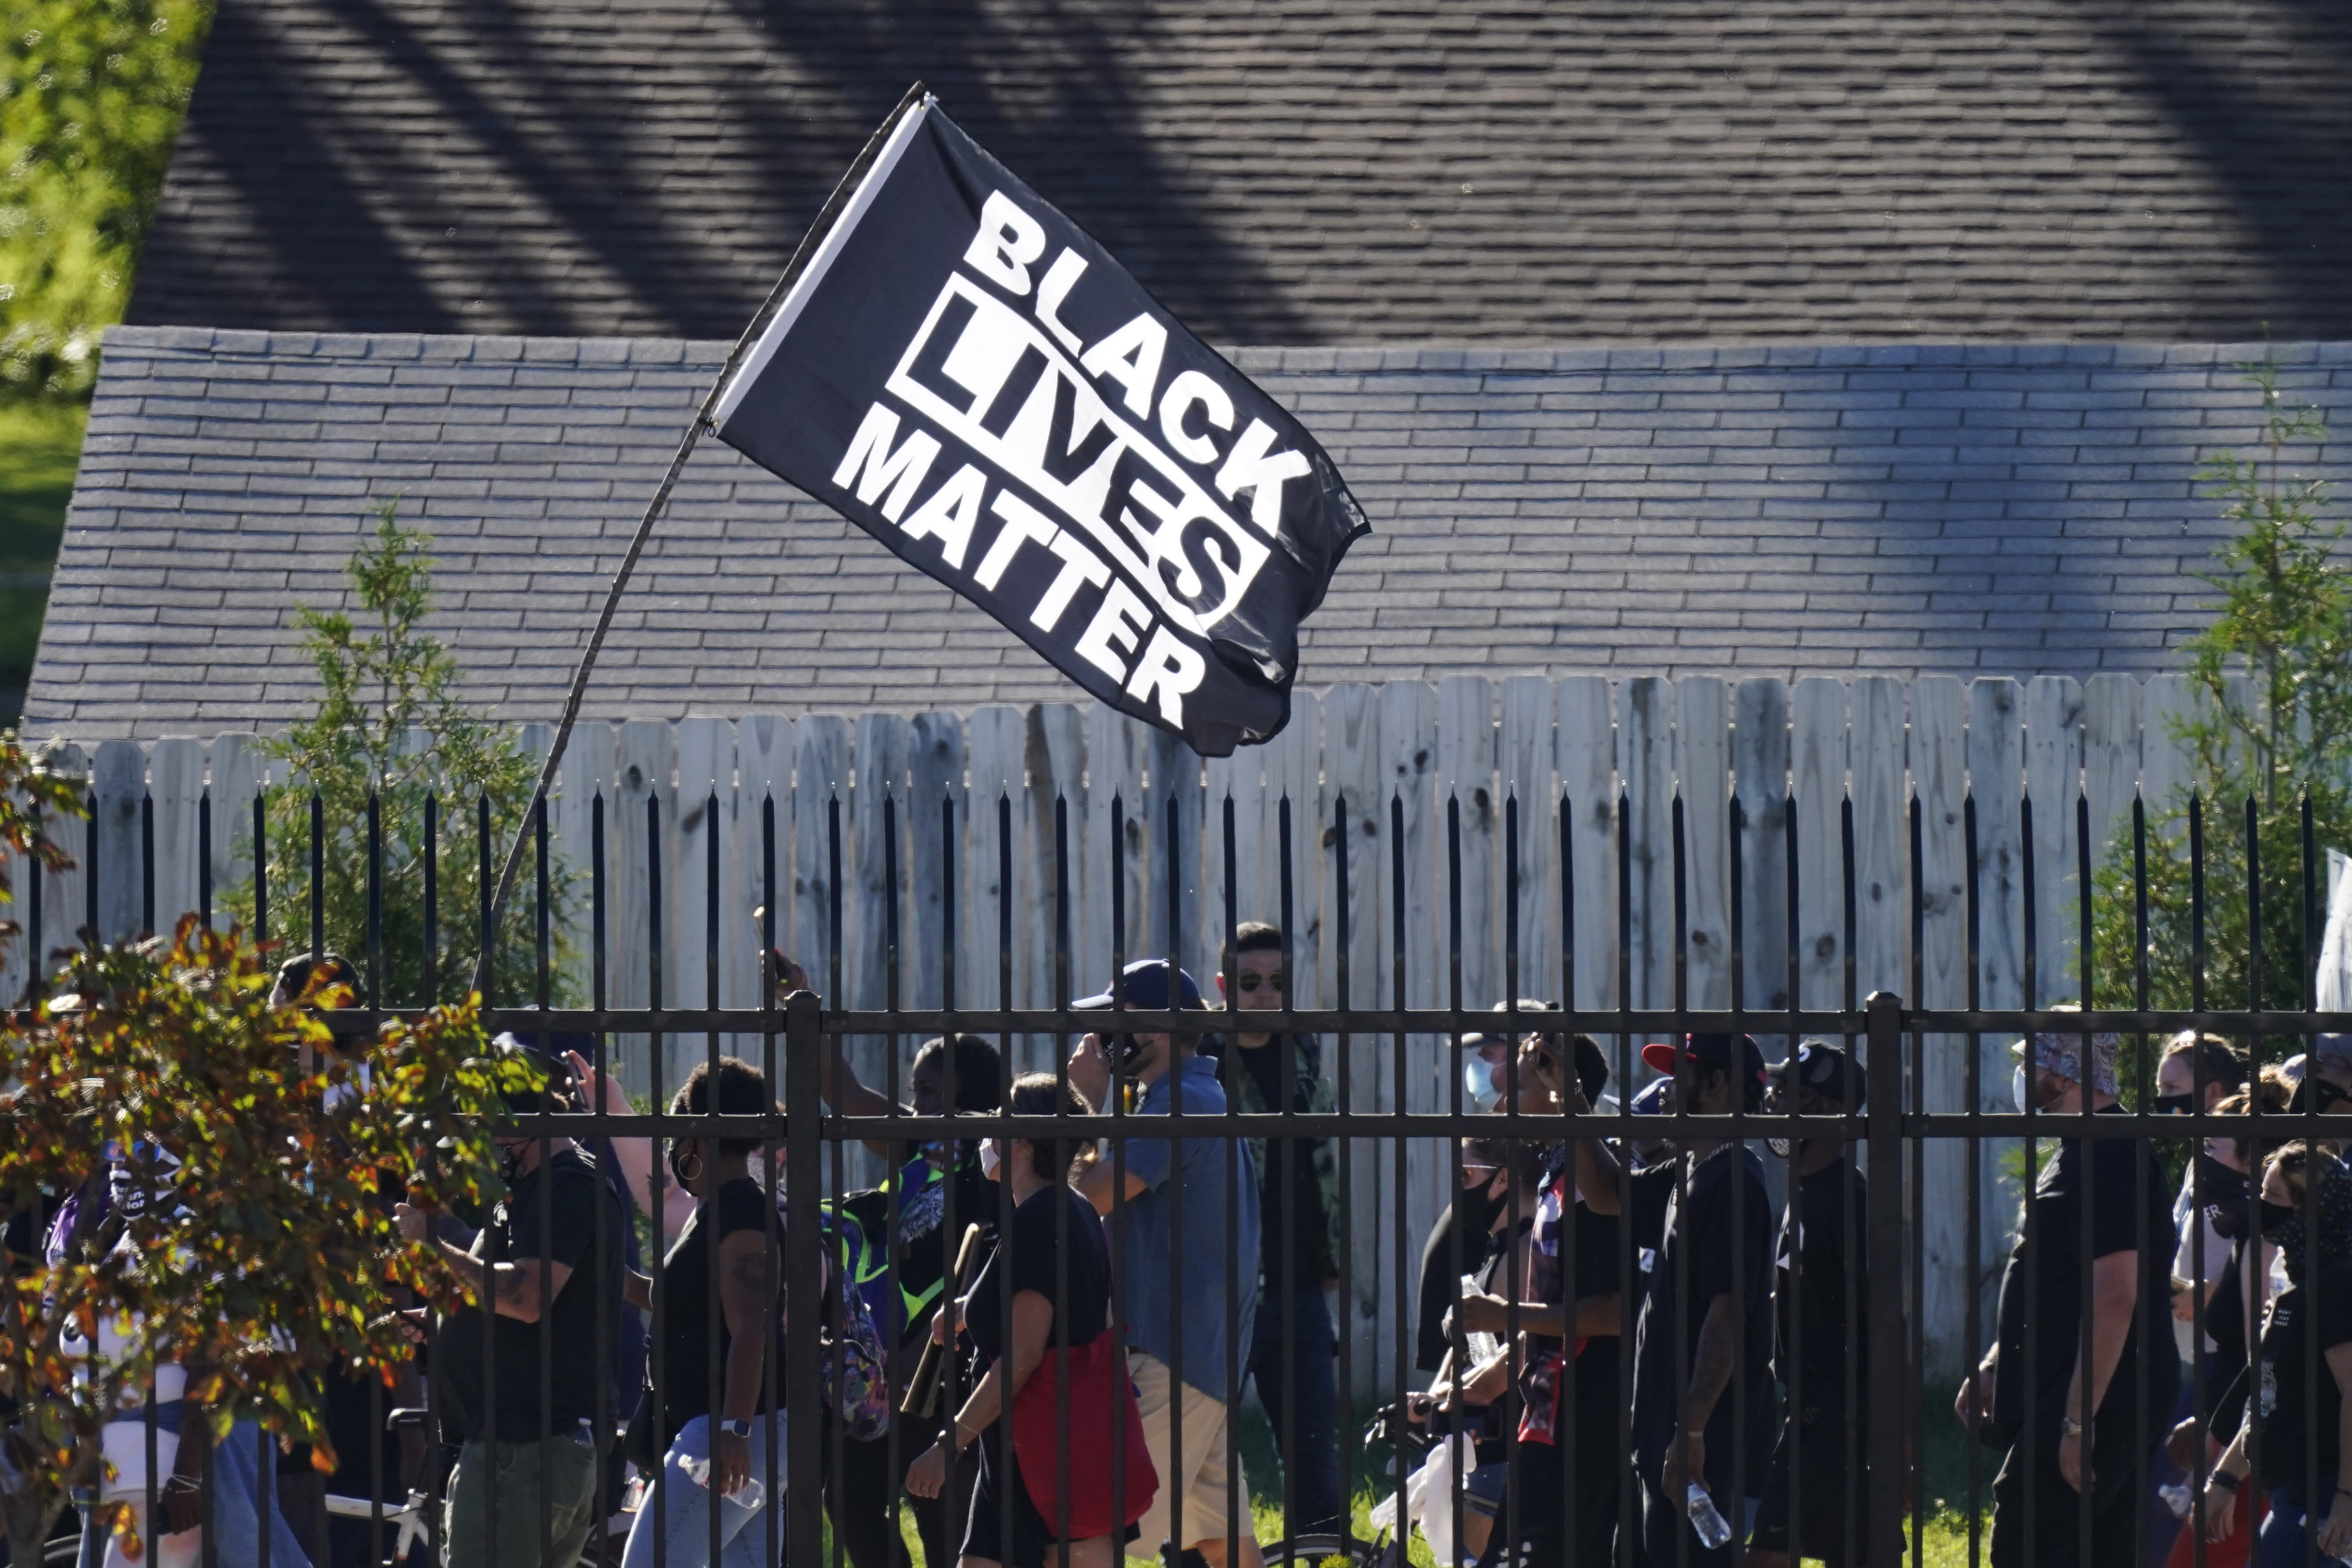 Protesters march past the Churchill Downs racetrack before the 146th running of the Kentucky Derby horse race, Saturday, Sept. 5, 2020, in Louisville, Ky. (AP Photo/Charlie Riedel)